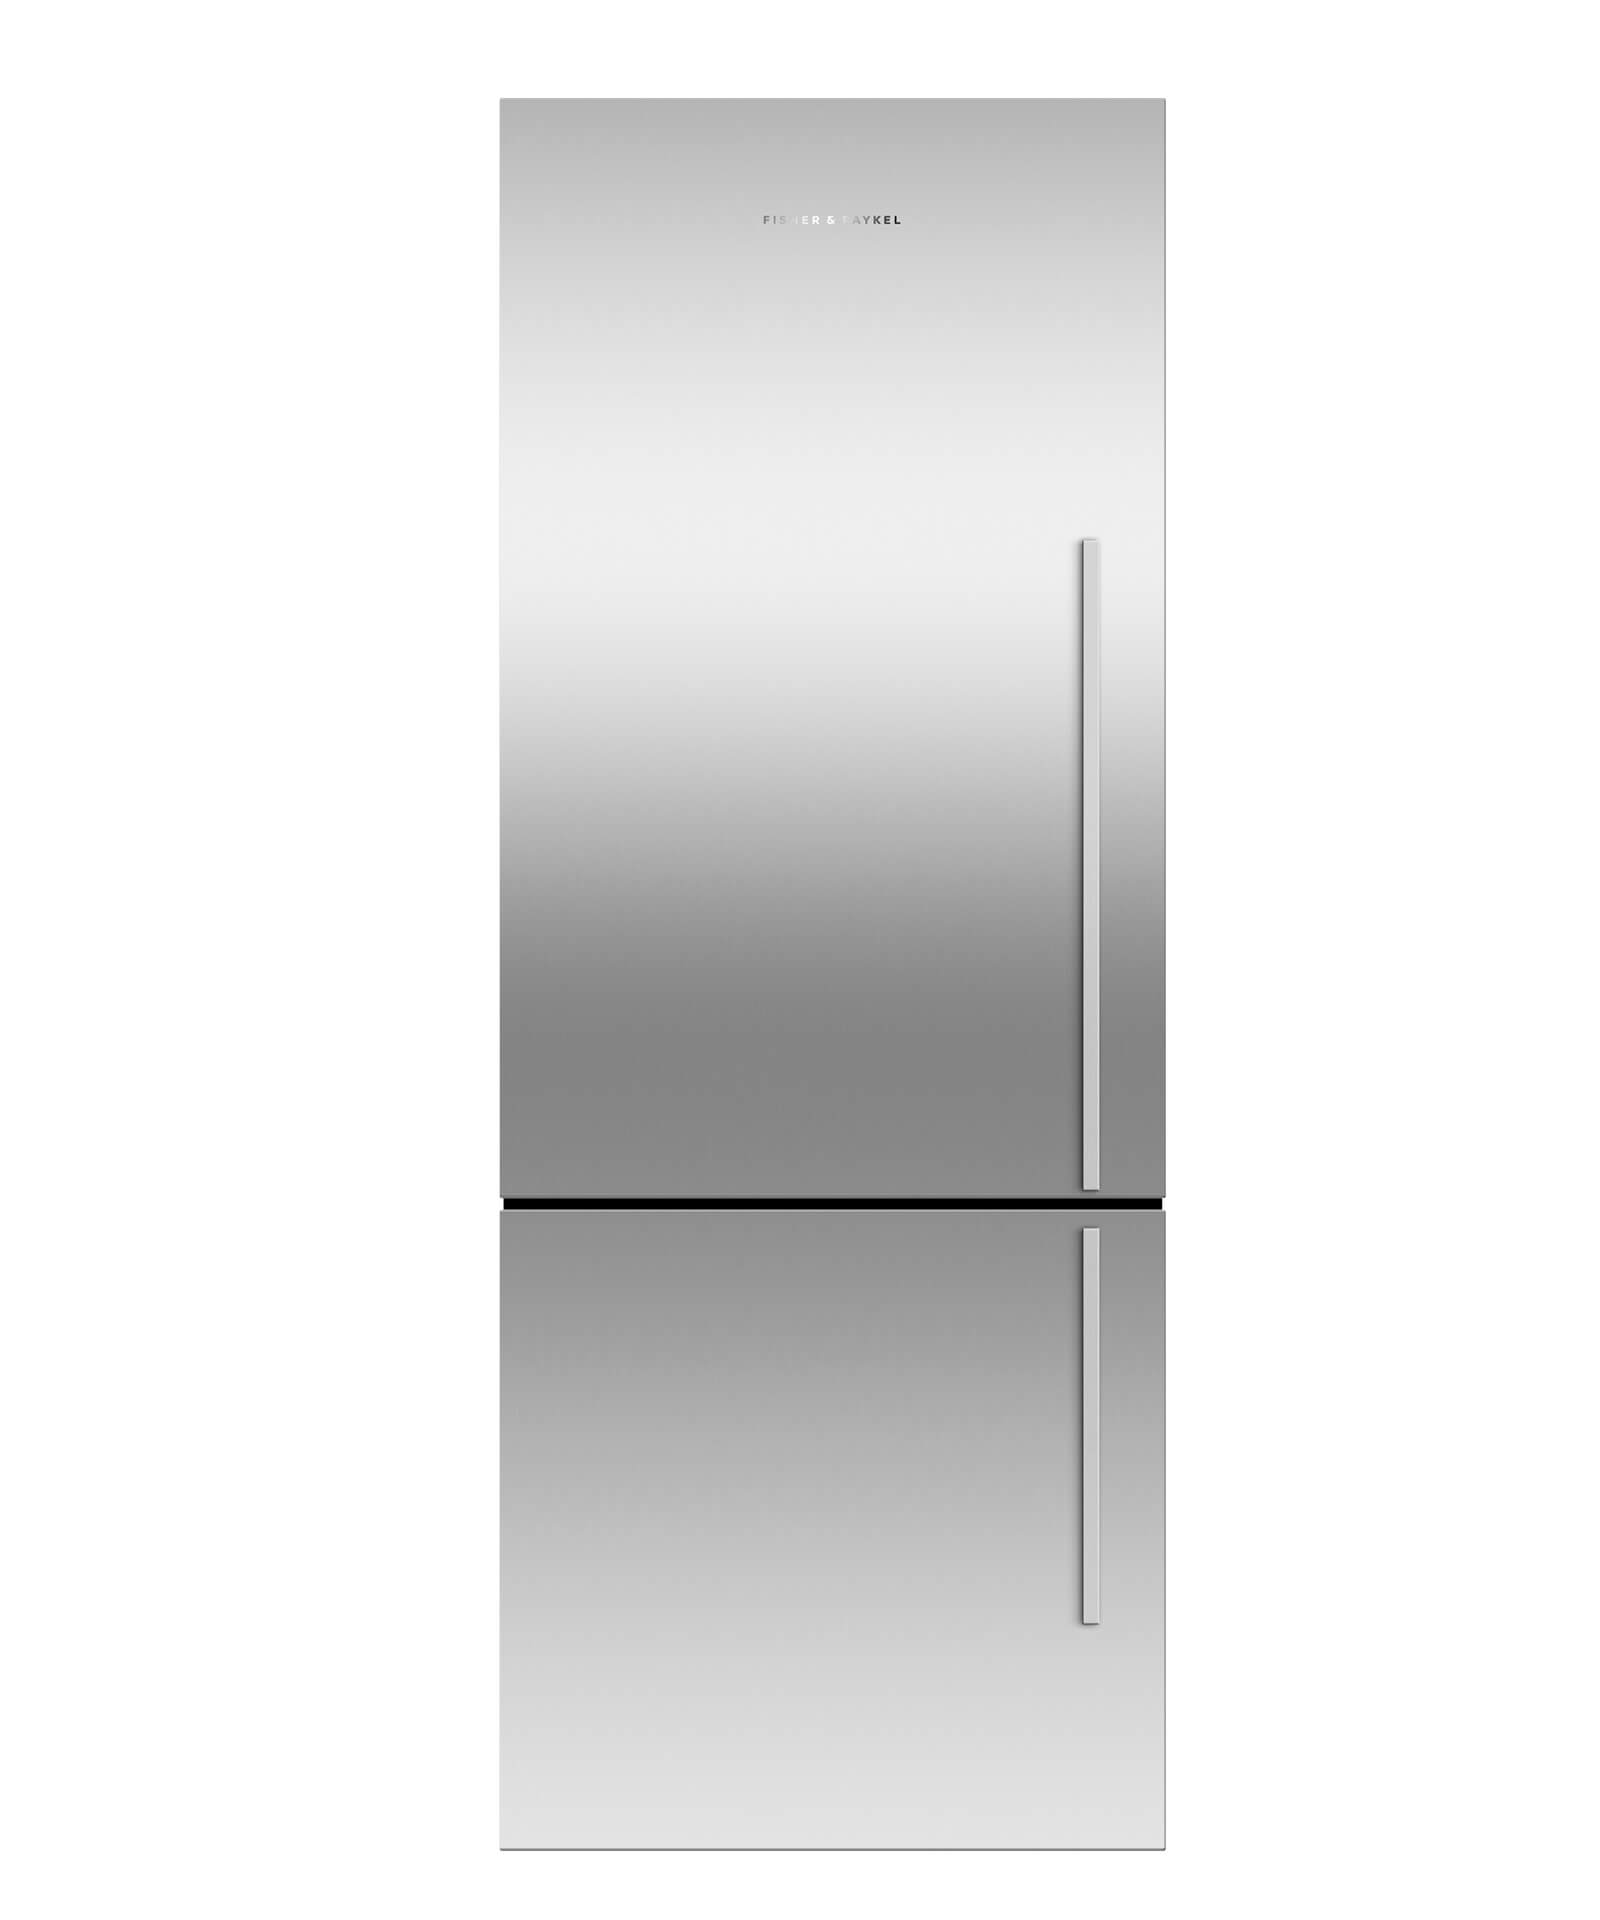 E402BLXFD4 - ActiveSmart™ Fridge - 635mm Bottom Freezer 364L - 25135